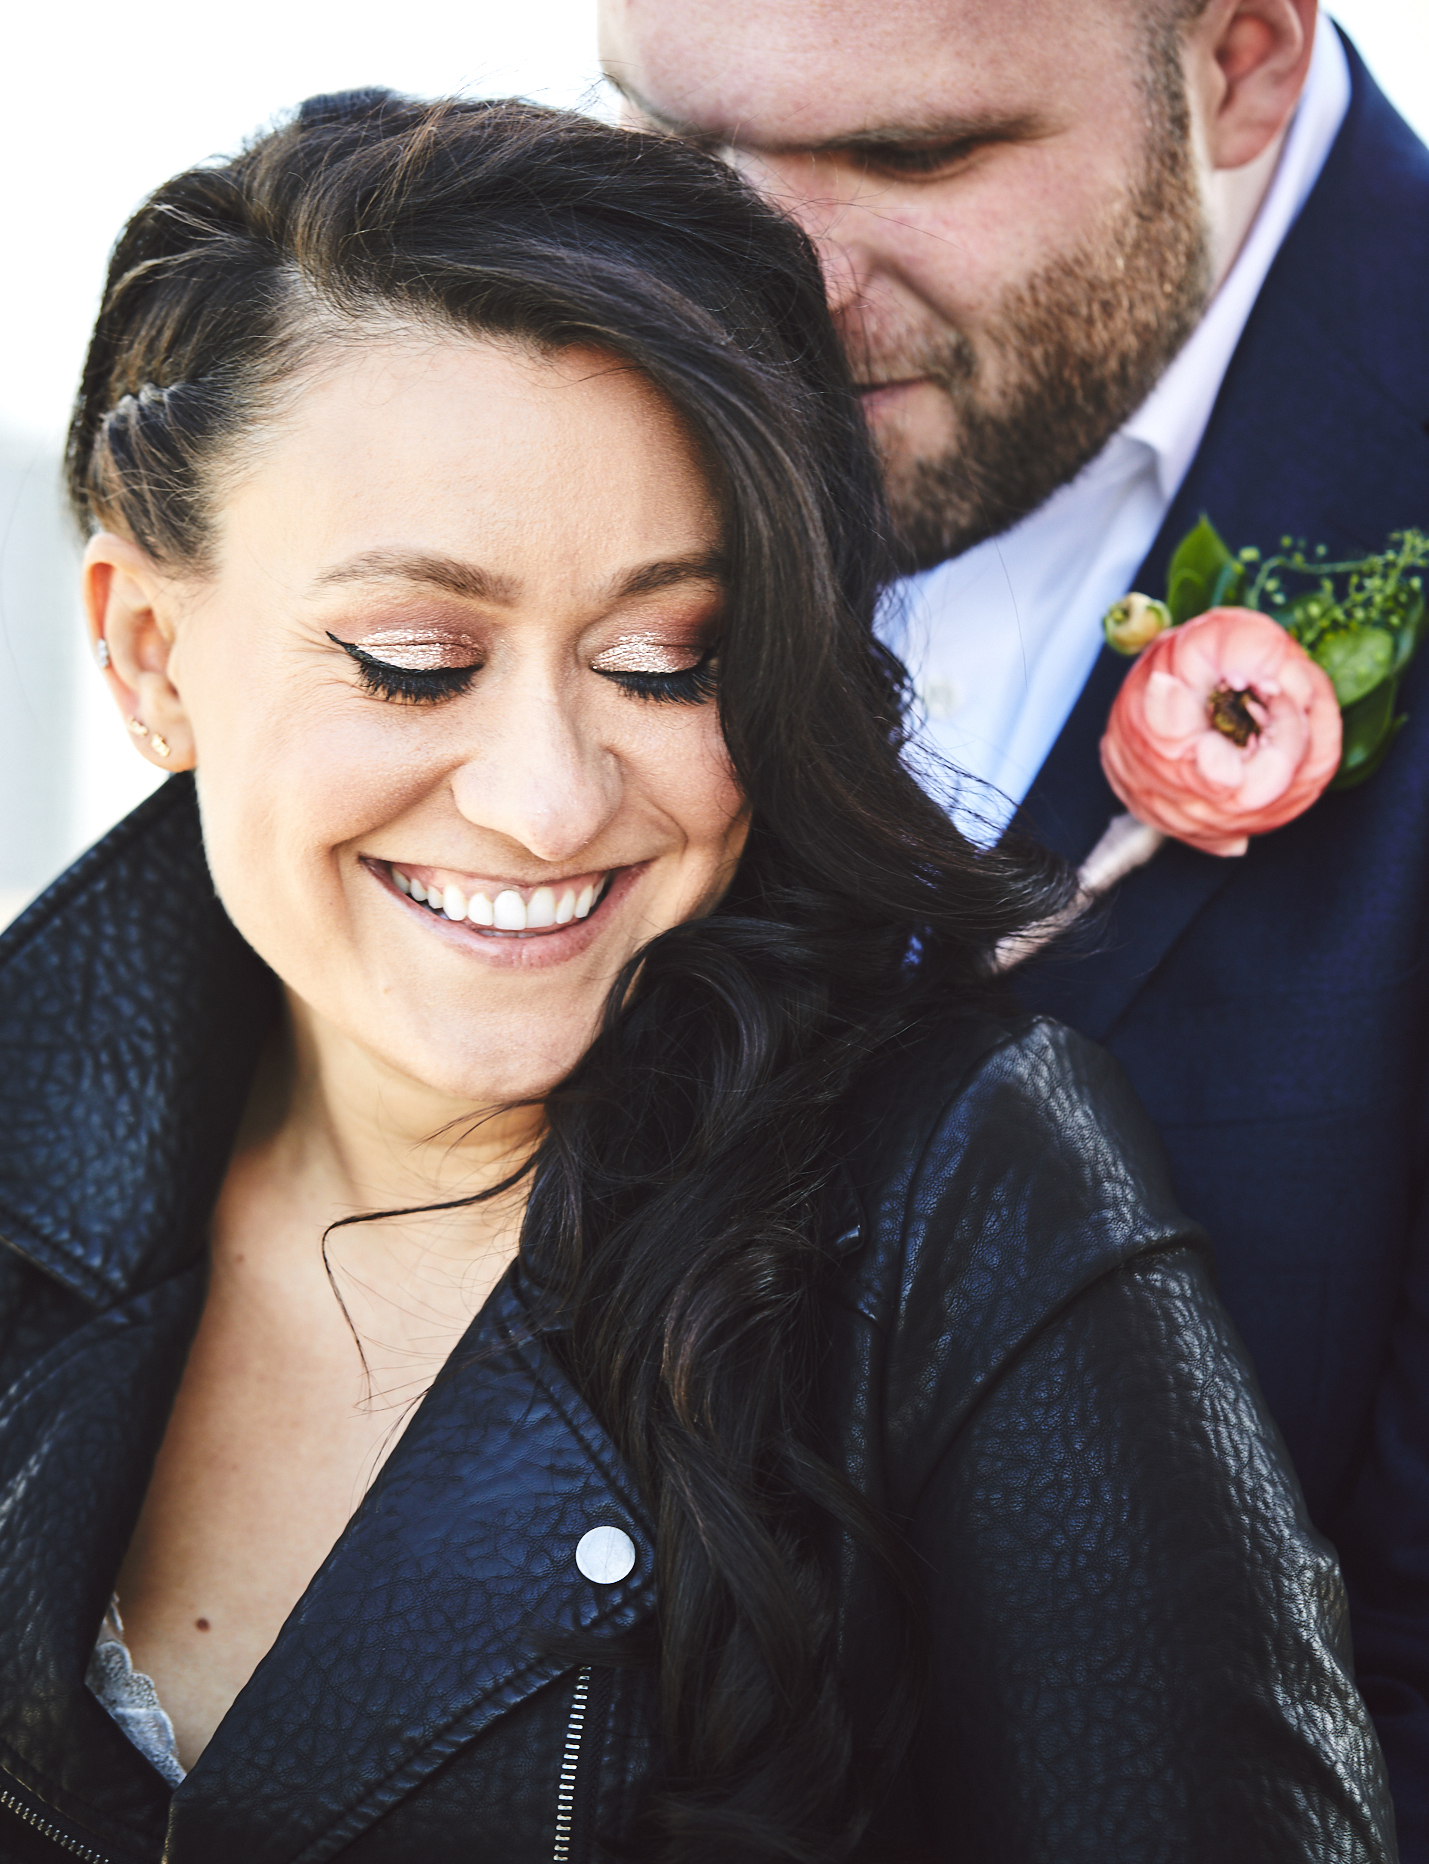 190518_SpringThreesBreweryWedding_By_BriJohnsonWeddings_0056.jpg